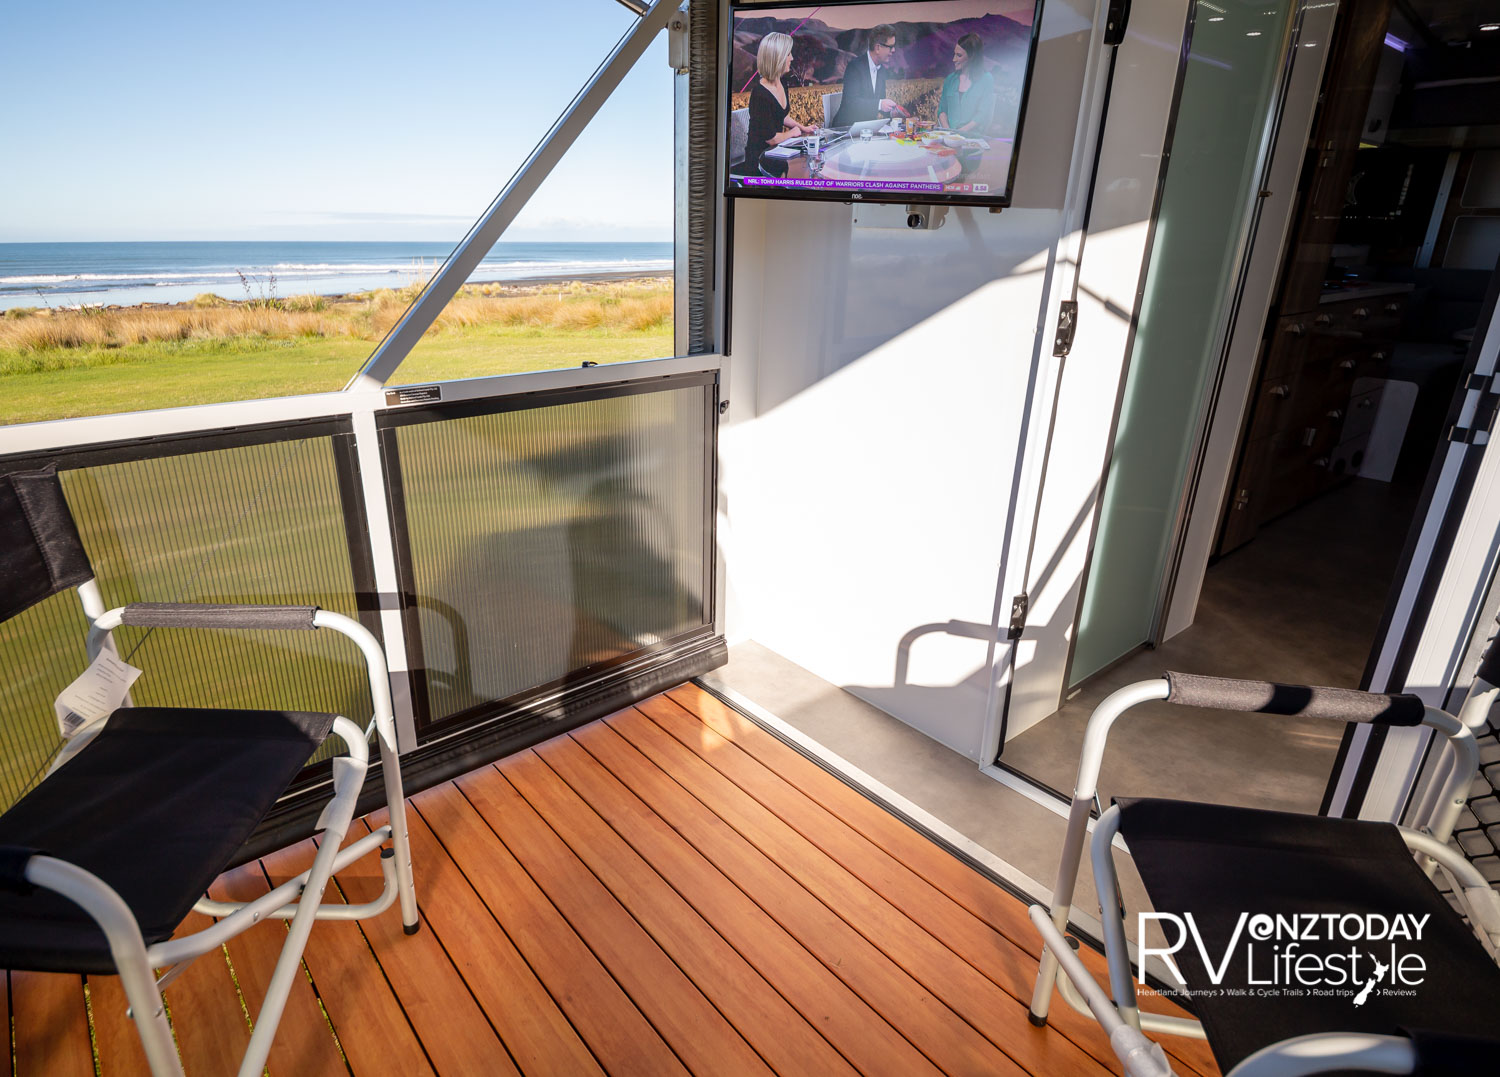 Featuring a innovative and spacious Sky-deck, which can be set-up in a couple of minutes – this is sure to get us outdoors Kiwis excited. Photos by camleggettphoto.com